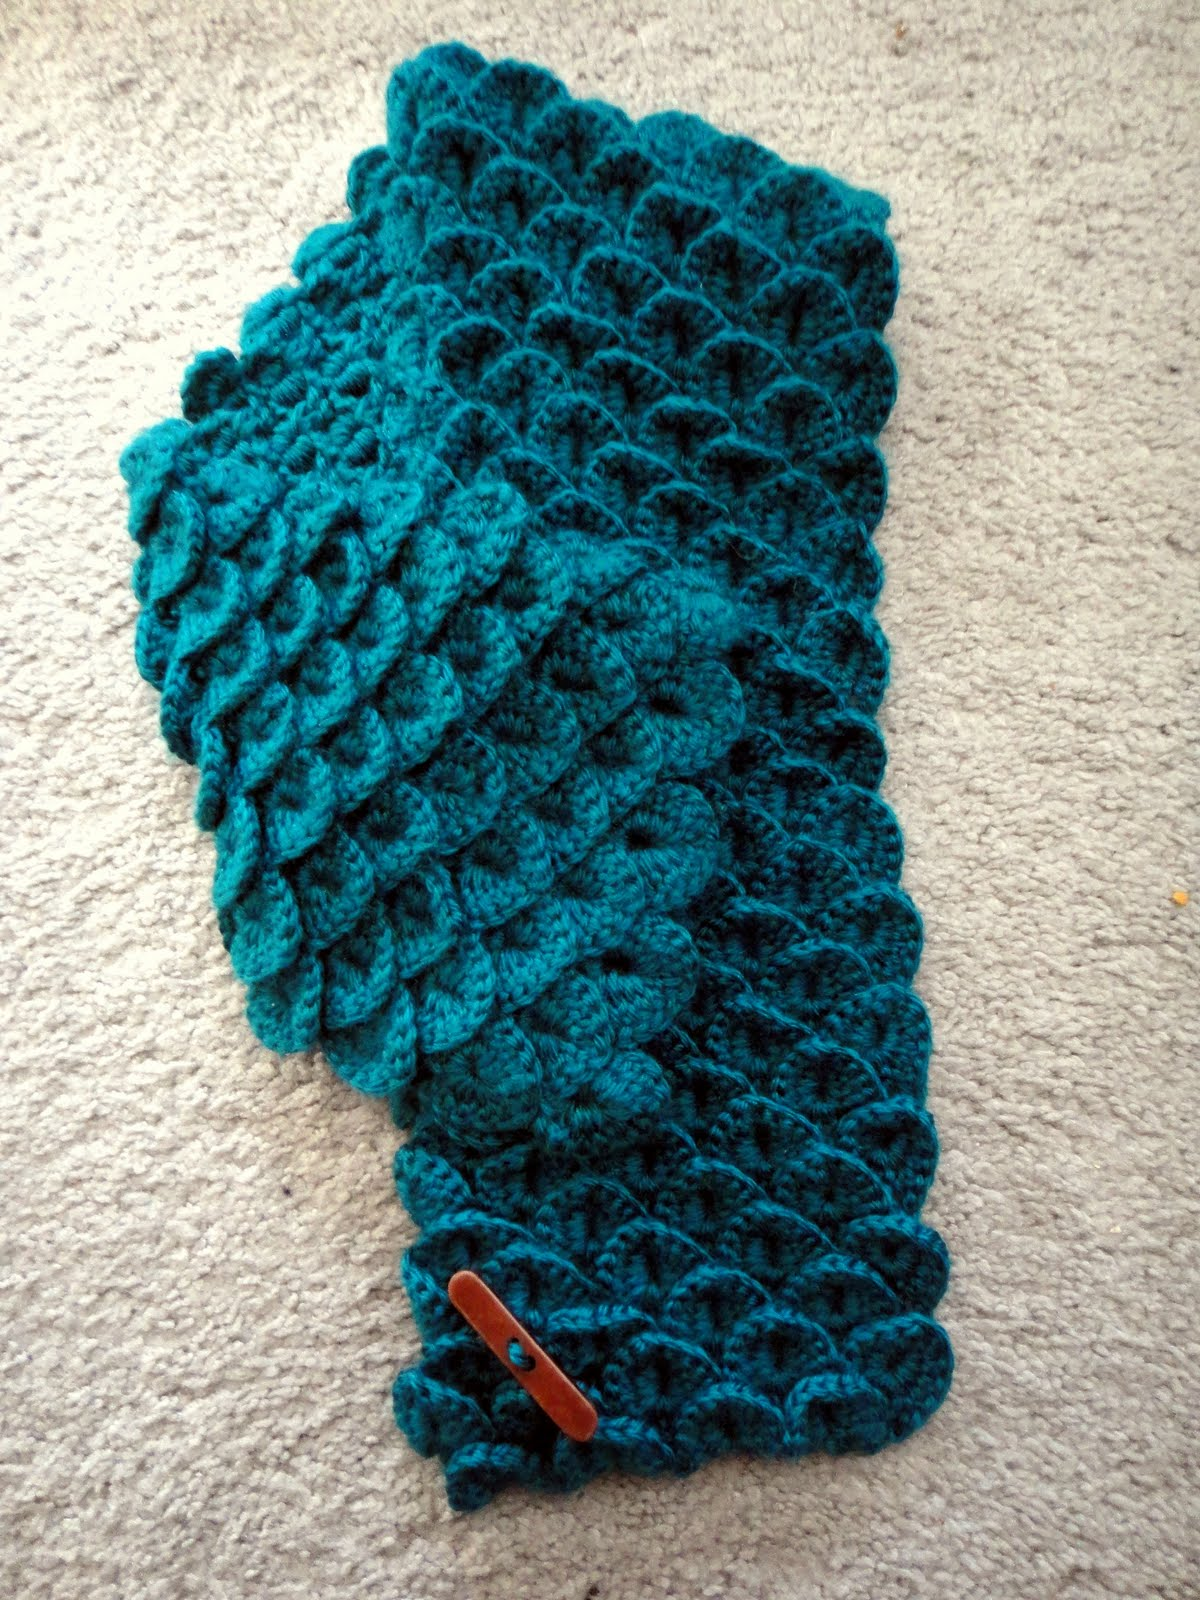 Crochet Stitches Crocodile : ... .com that included using, what they called, the Crocodile Stitch